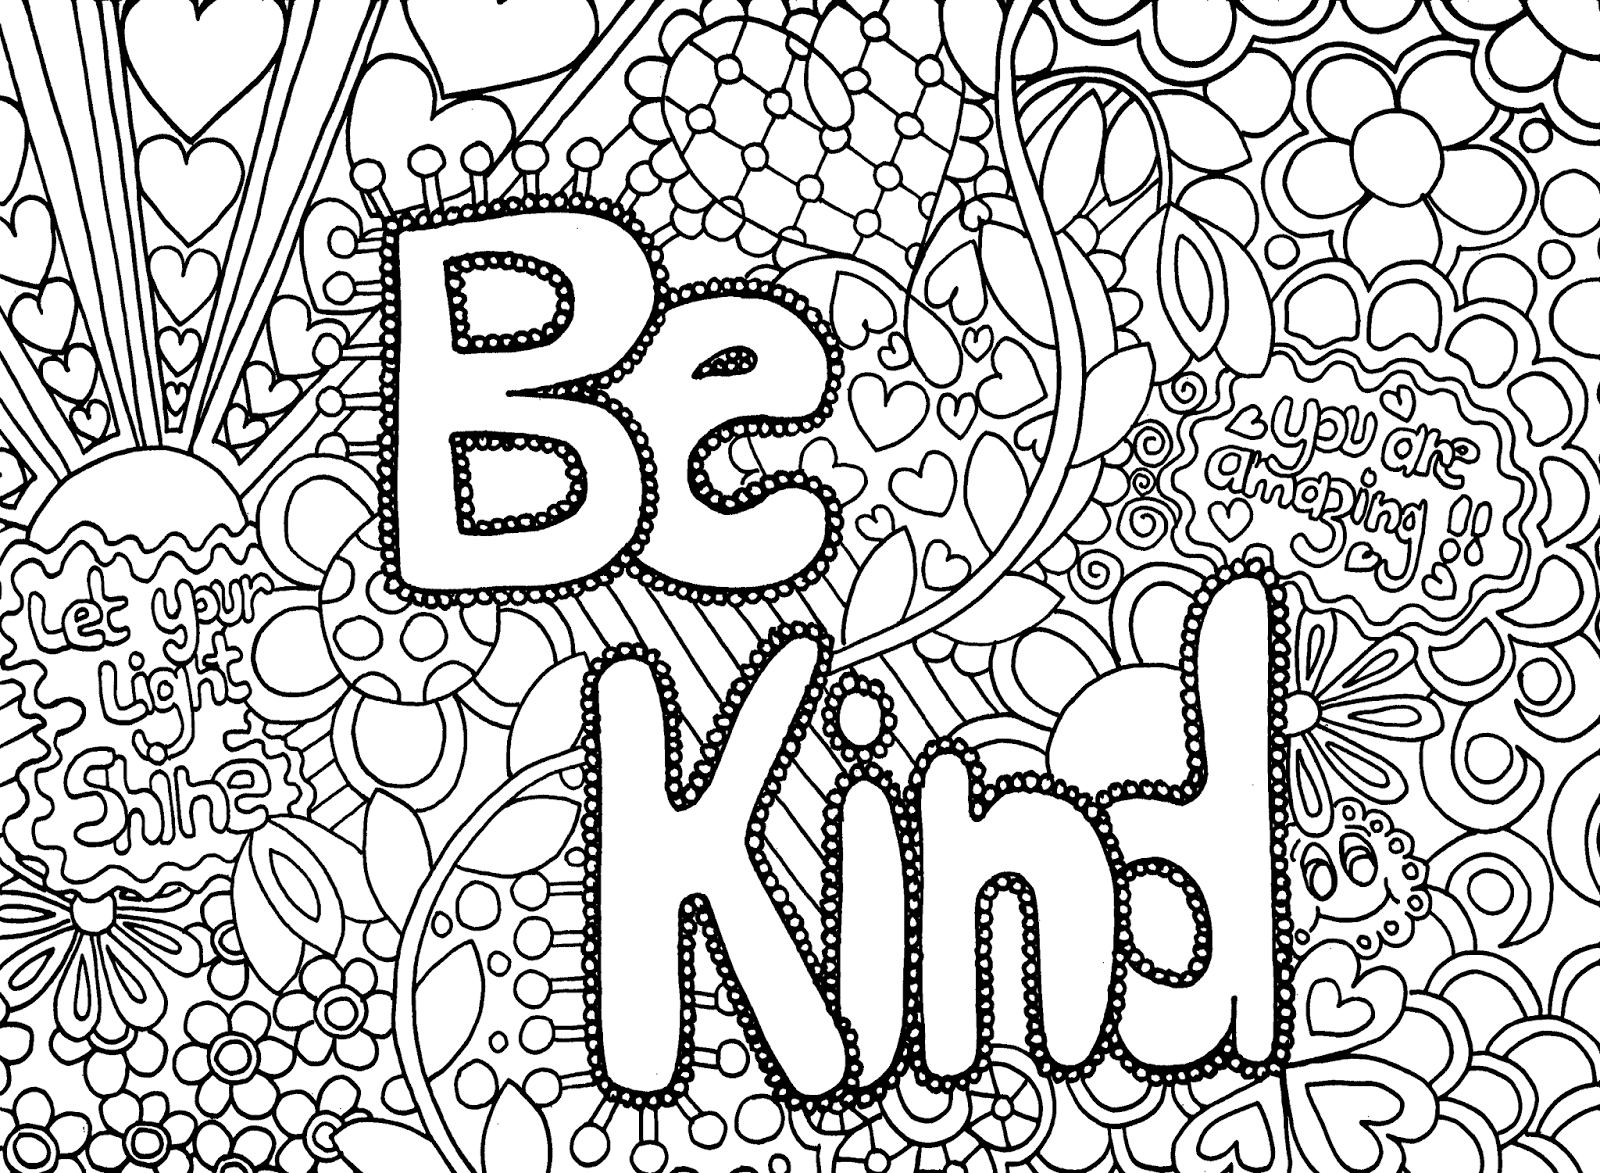 coloring pages of difficult,printable,coloring pages